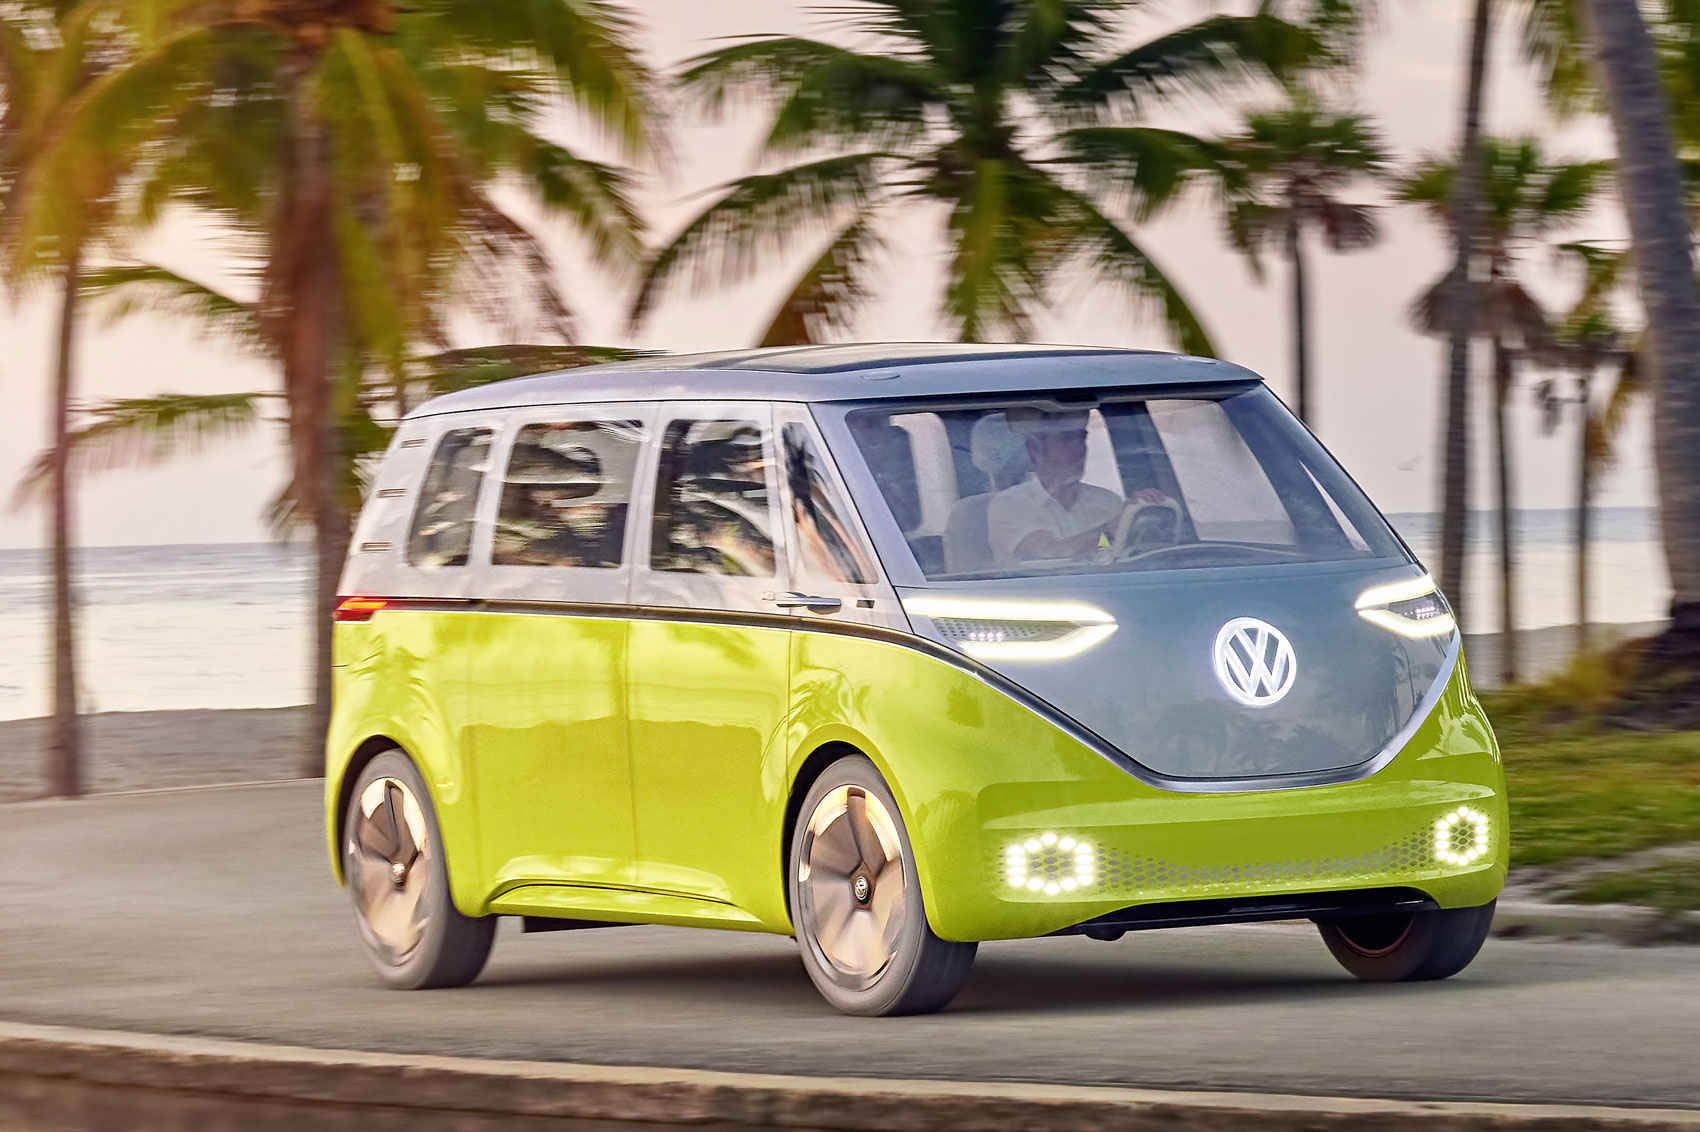 official all electric vw buzz cargo van confirmed for production parkers. Black Bedroom Furniture Sets. Home Design Ideas